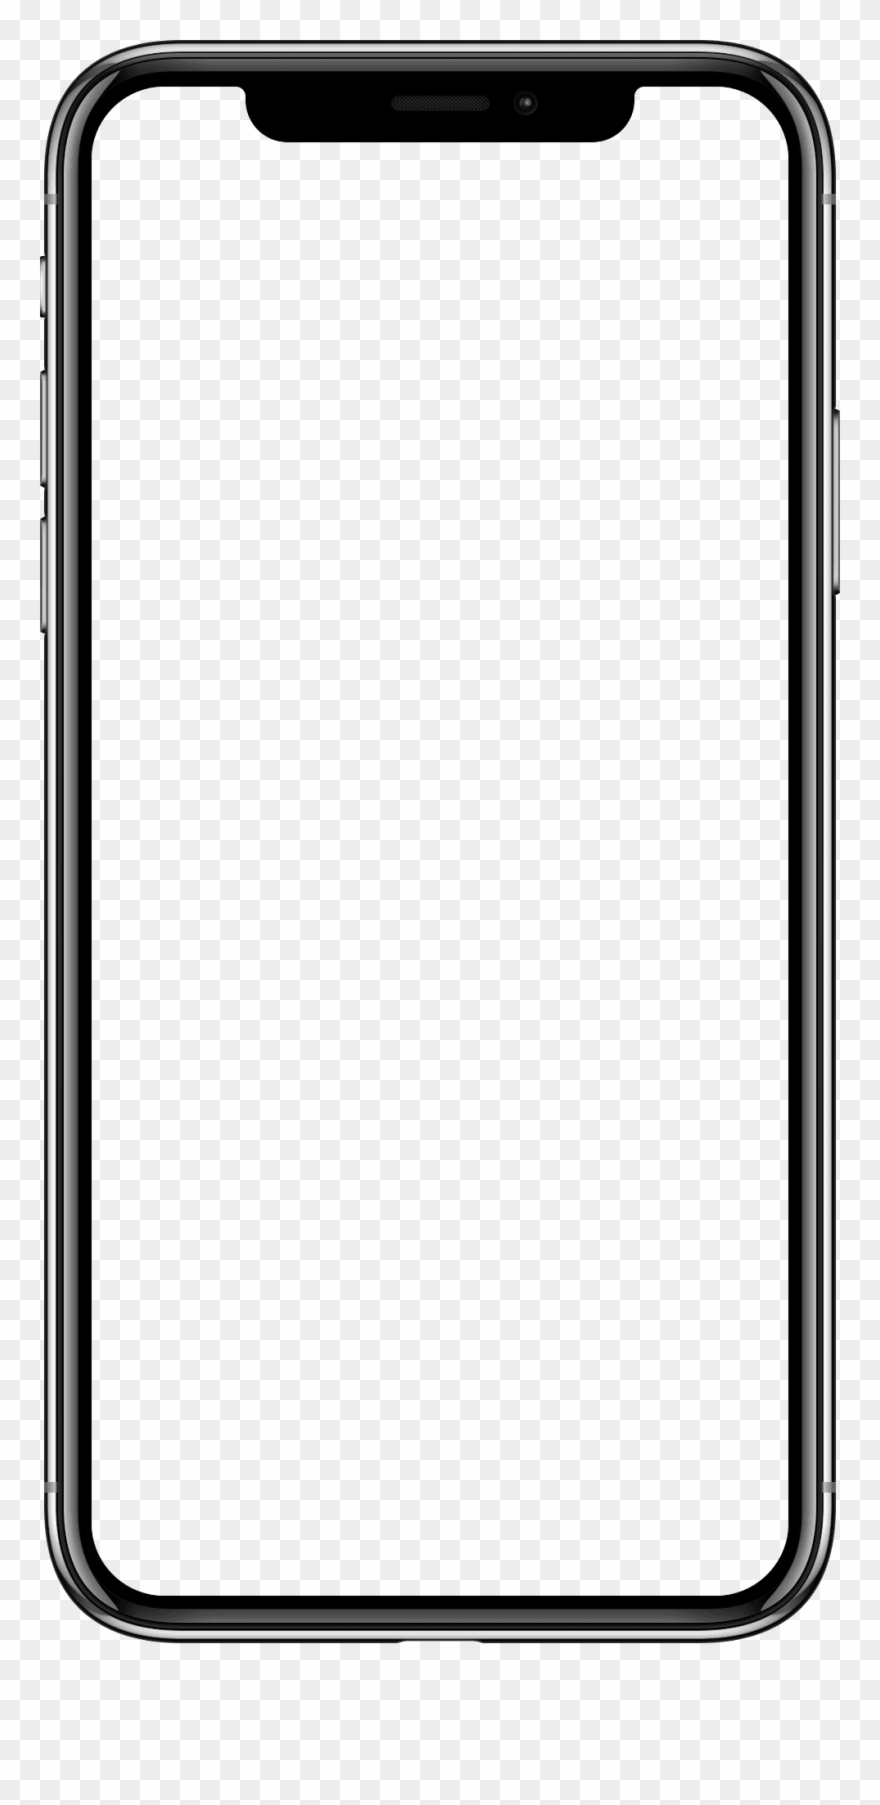 Blank Iphone Png.